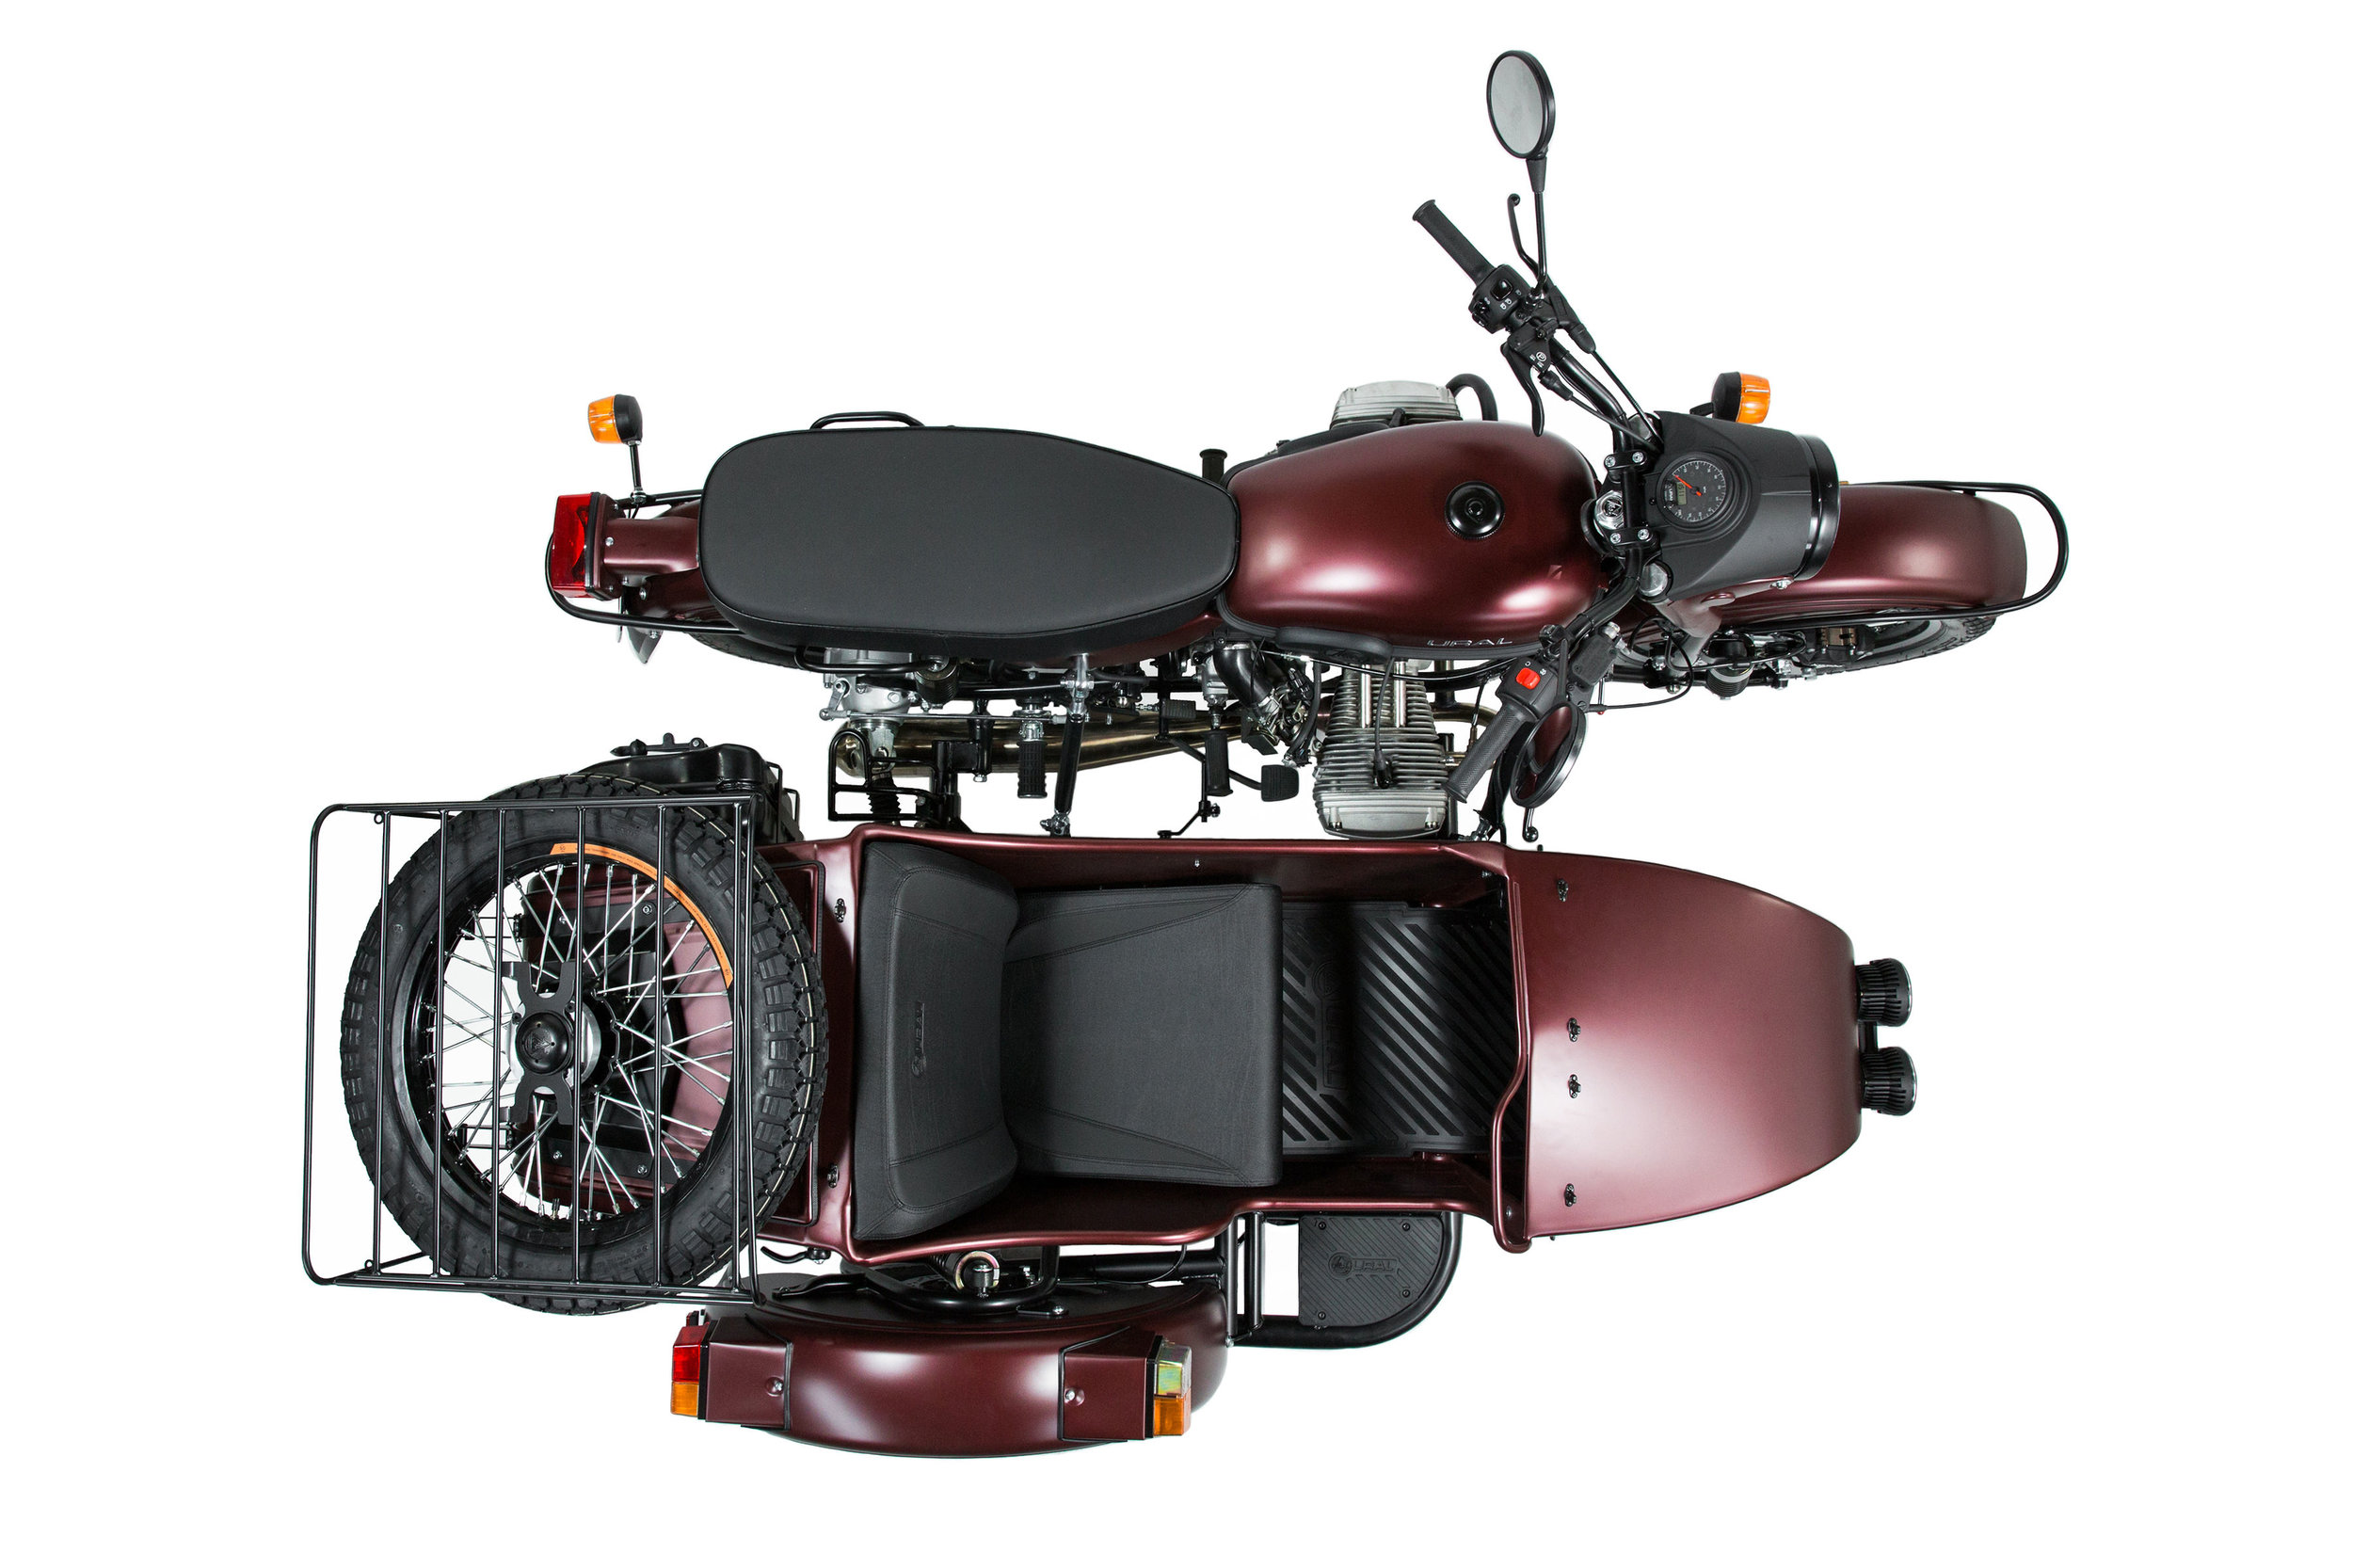 URAL_2019GearUp_Studio-14_final (1).jpg